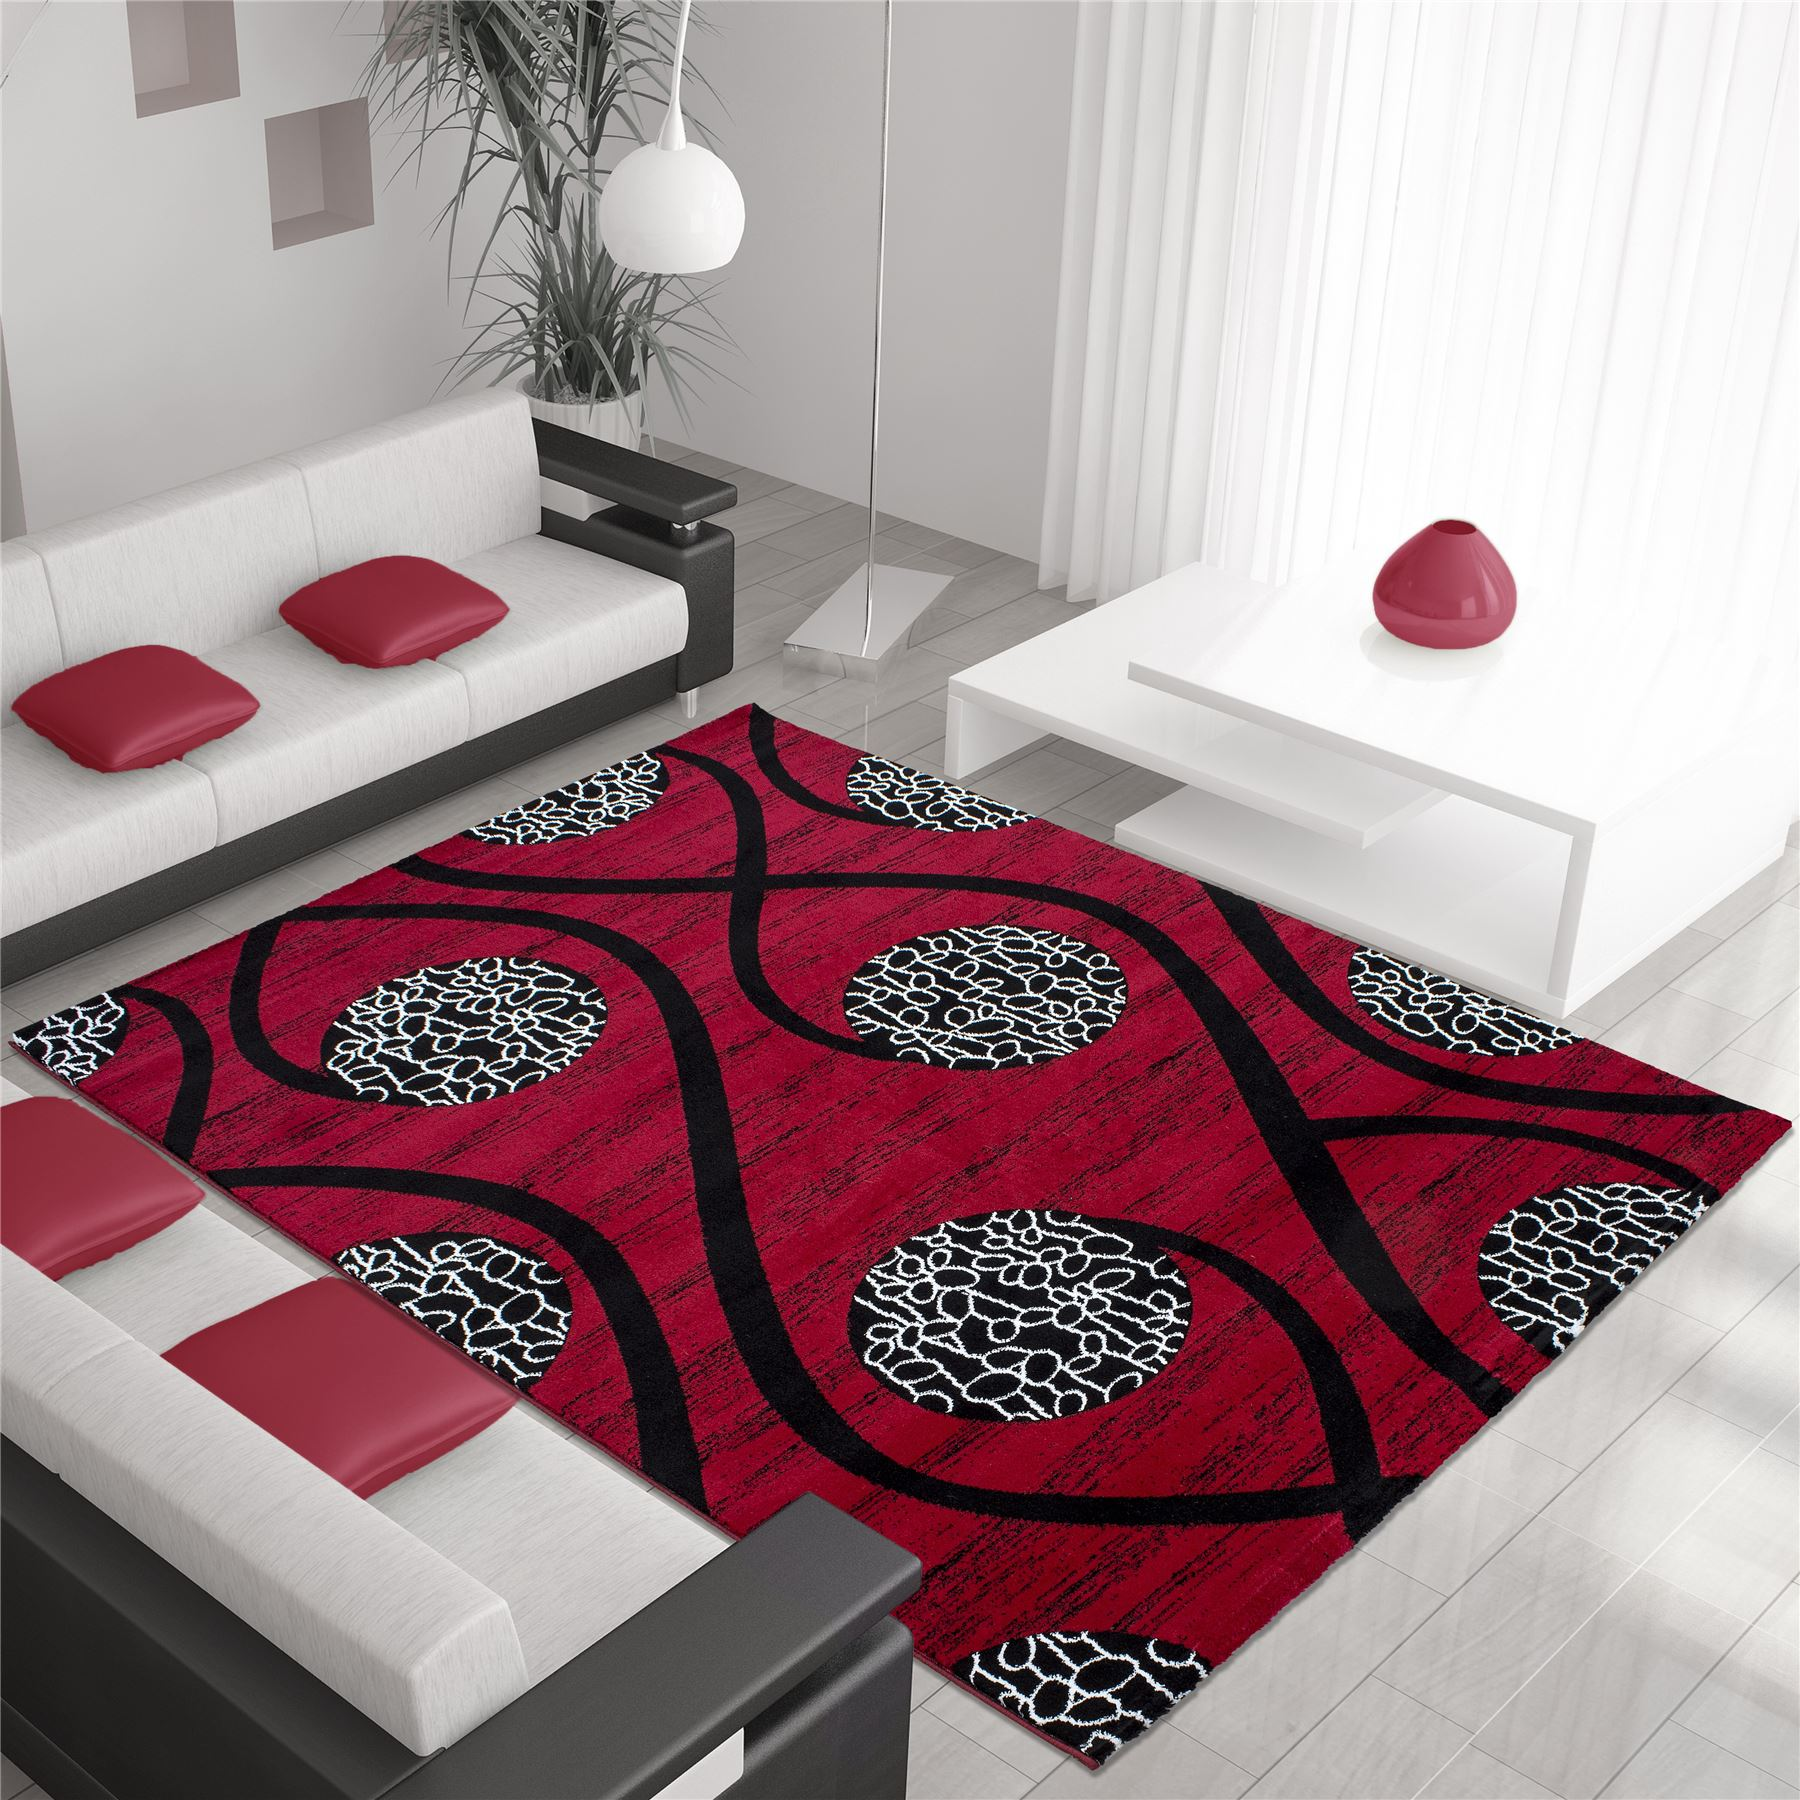 Black And White Extra Large Rug: Modern Contemporary Squares Swirls Black Red Beige Grey